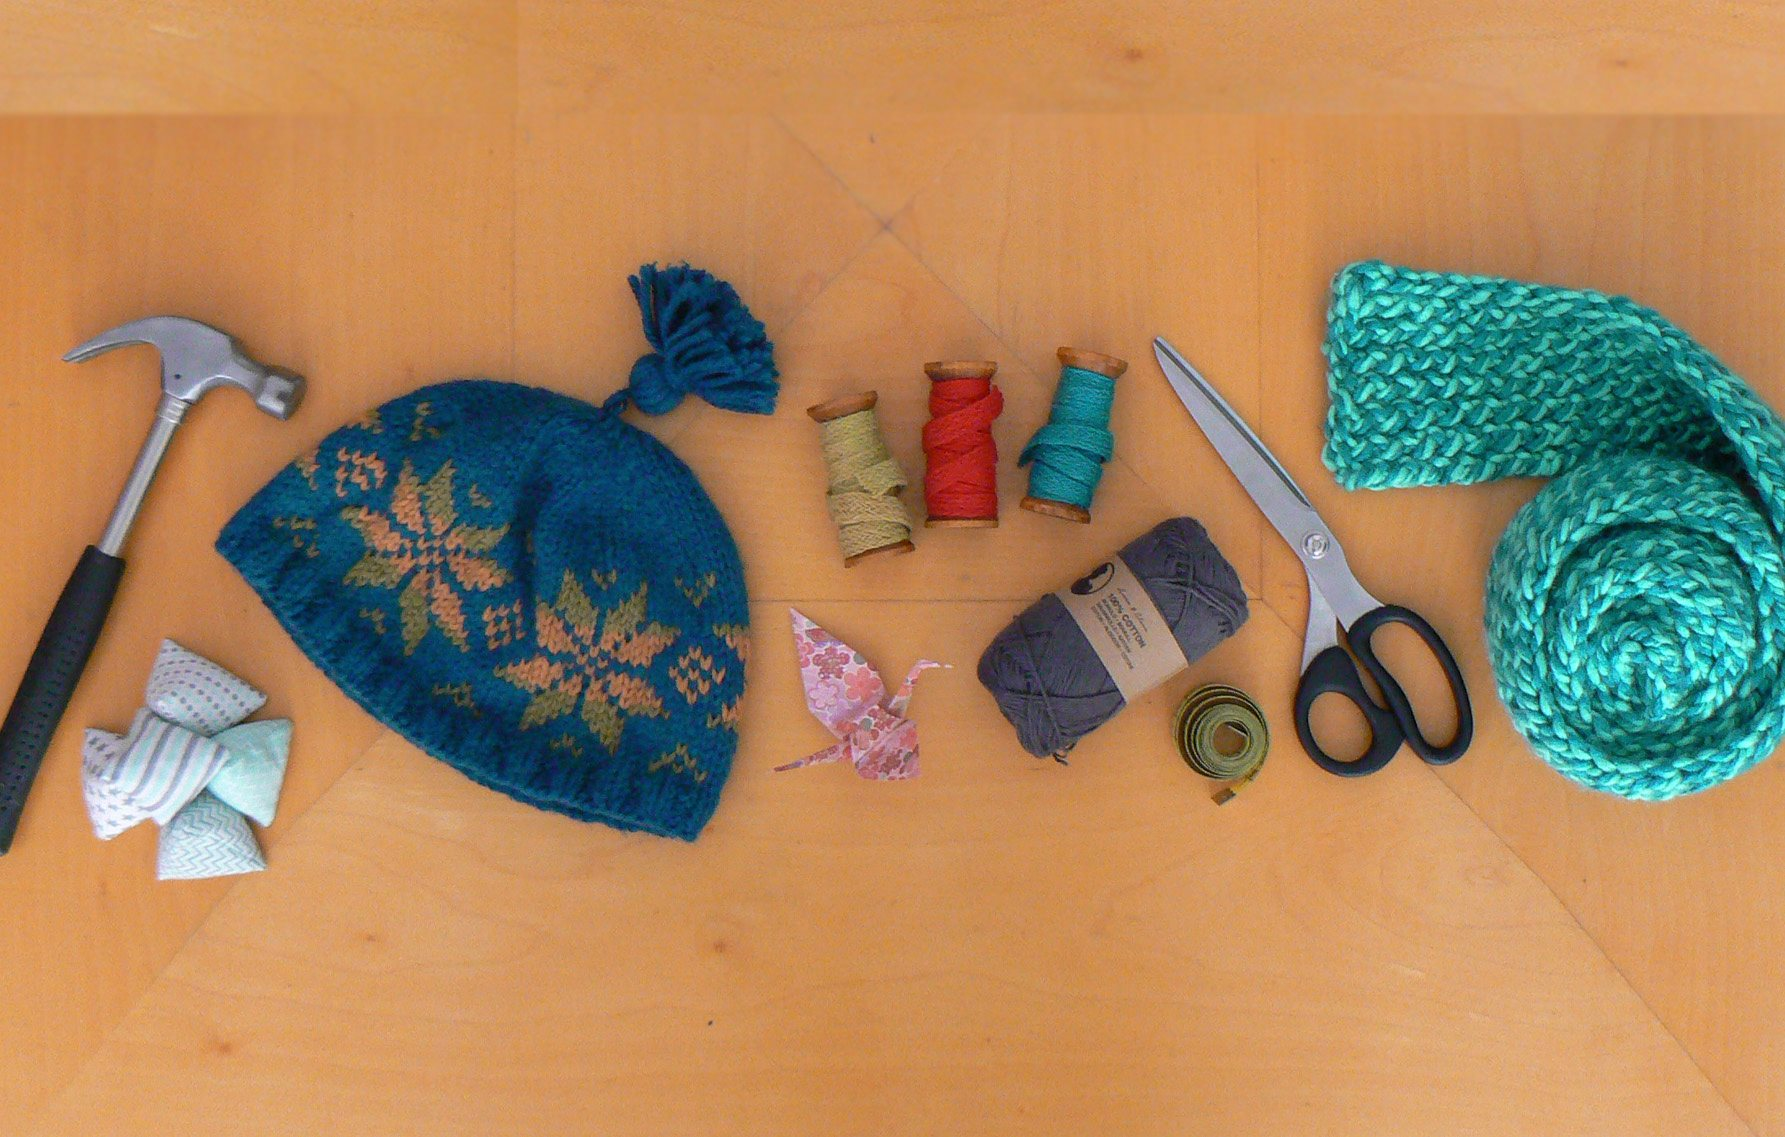 Weekend Watch: Let's Do Some Crafts with Ellen